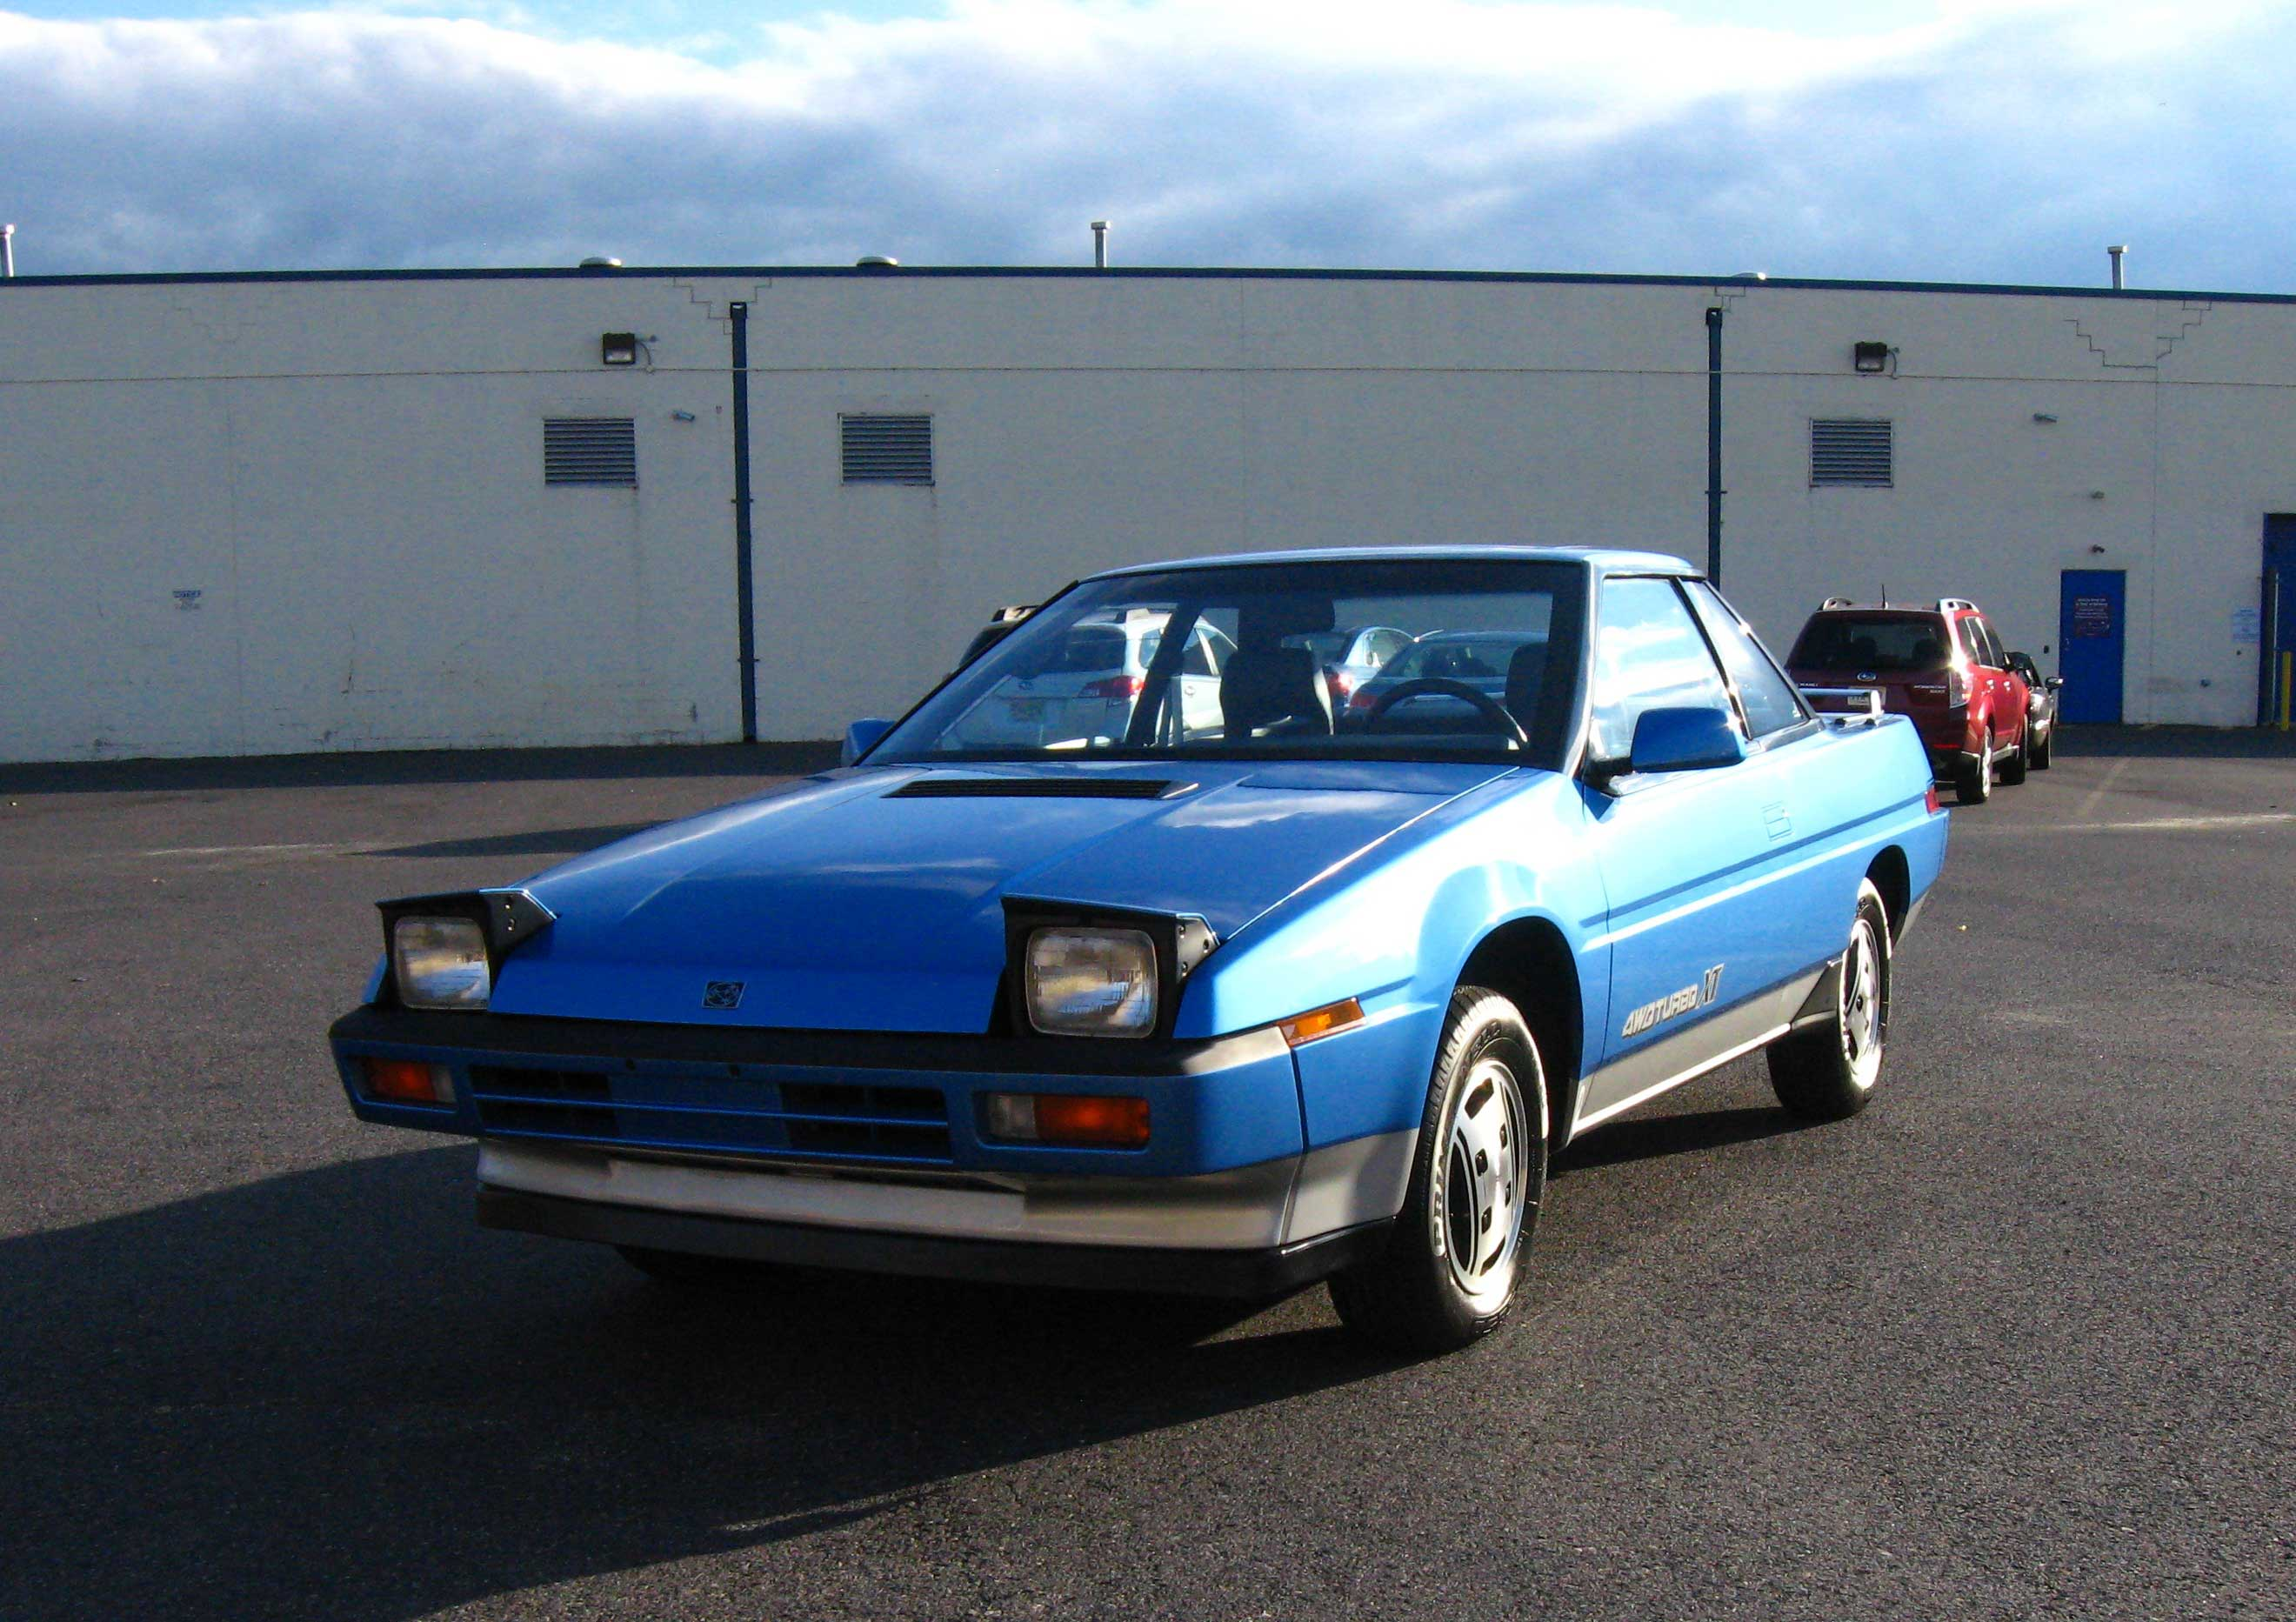 Crazyjdms 1991 subaru alcyone svx its predecessor the alcyone xt i might cover this car in the future vanachro Images